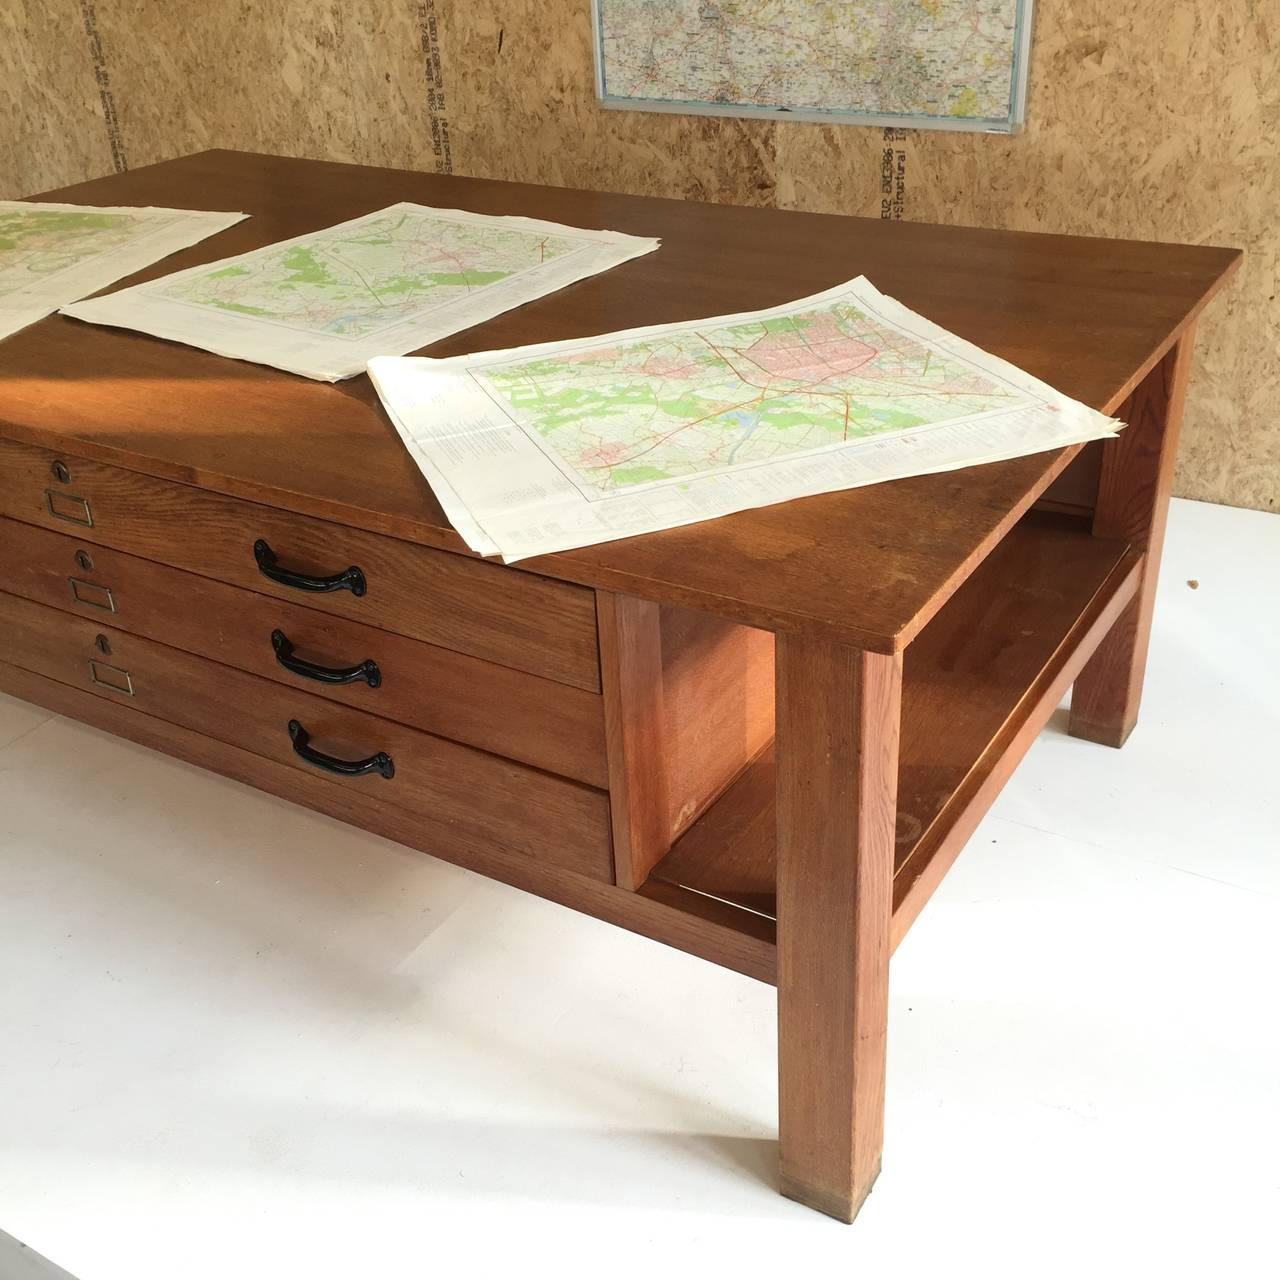 Large Oak Architects Flat File Map Table From Dutch